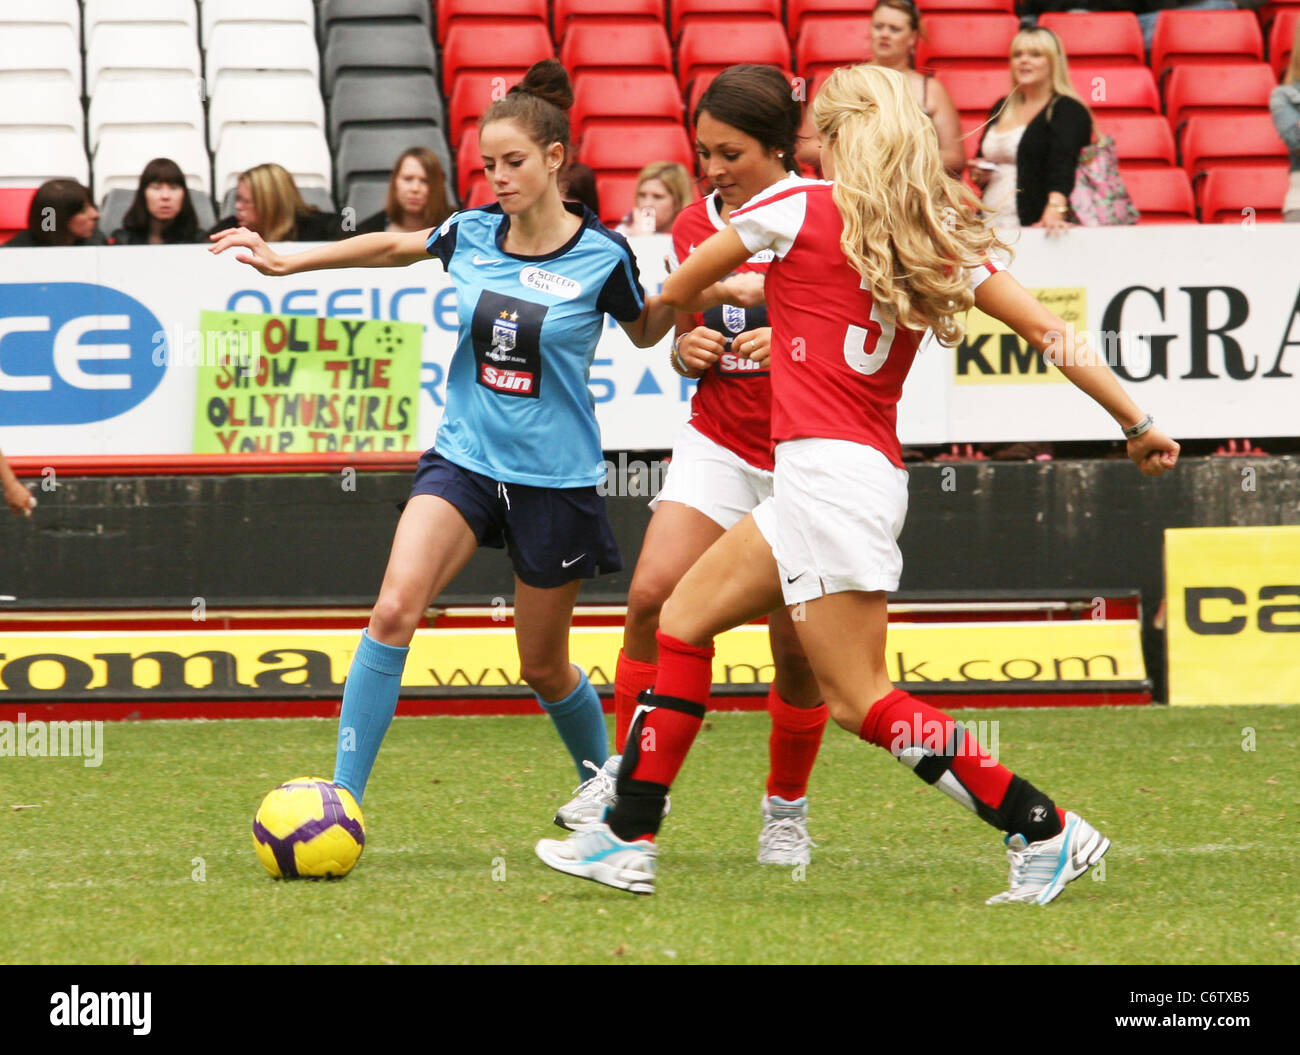 Pictures From Soccer Six 2015 - imagecollect.com